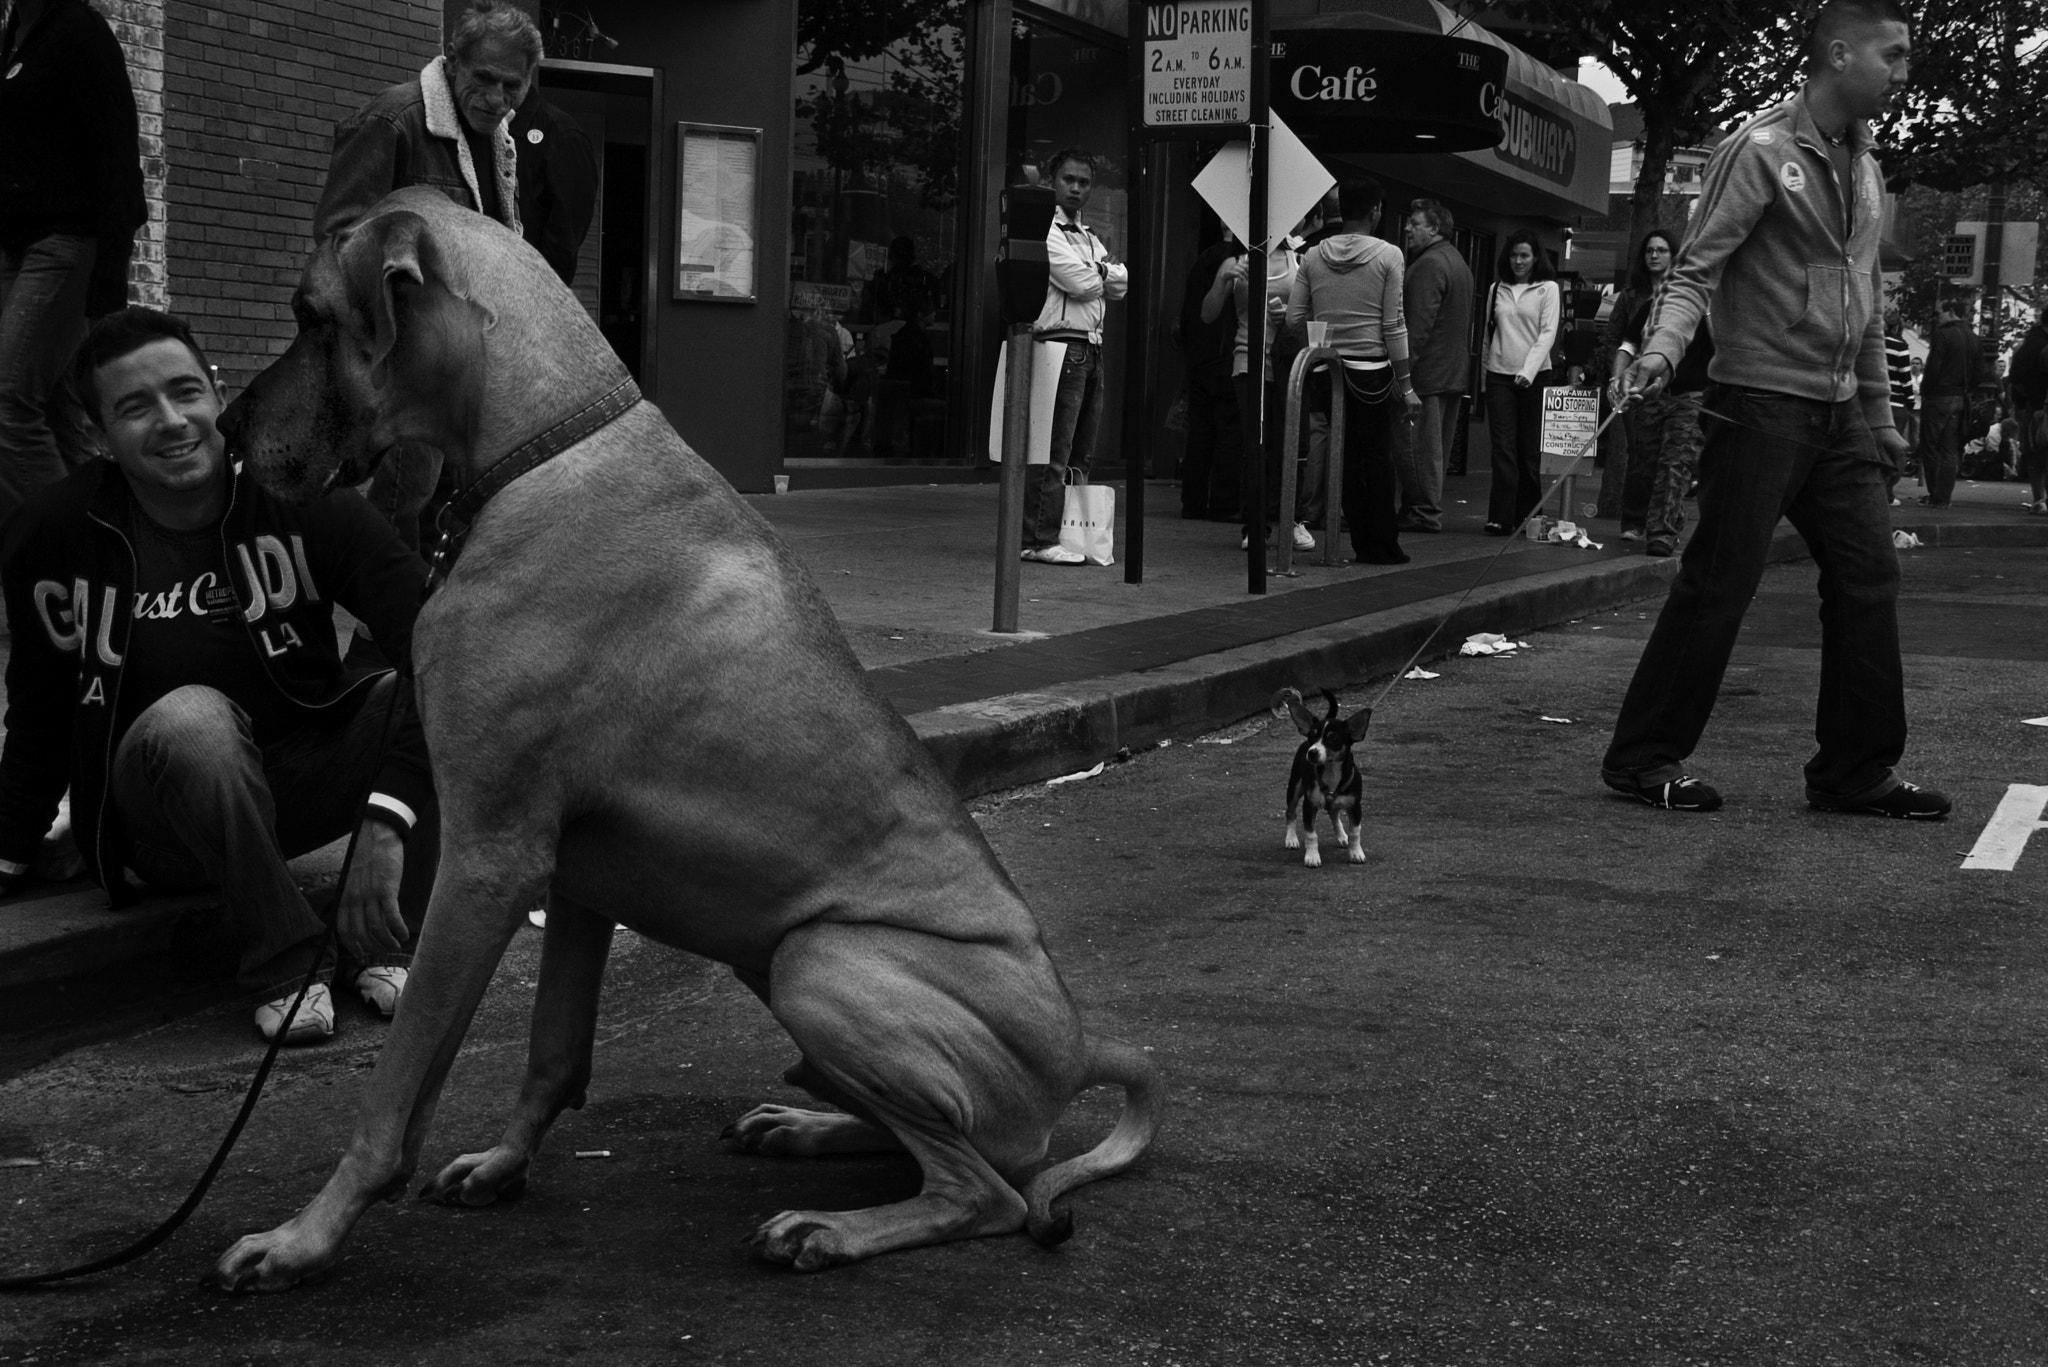 Photograph San Francisco, 2006 by Juan Buhler on 500px